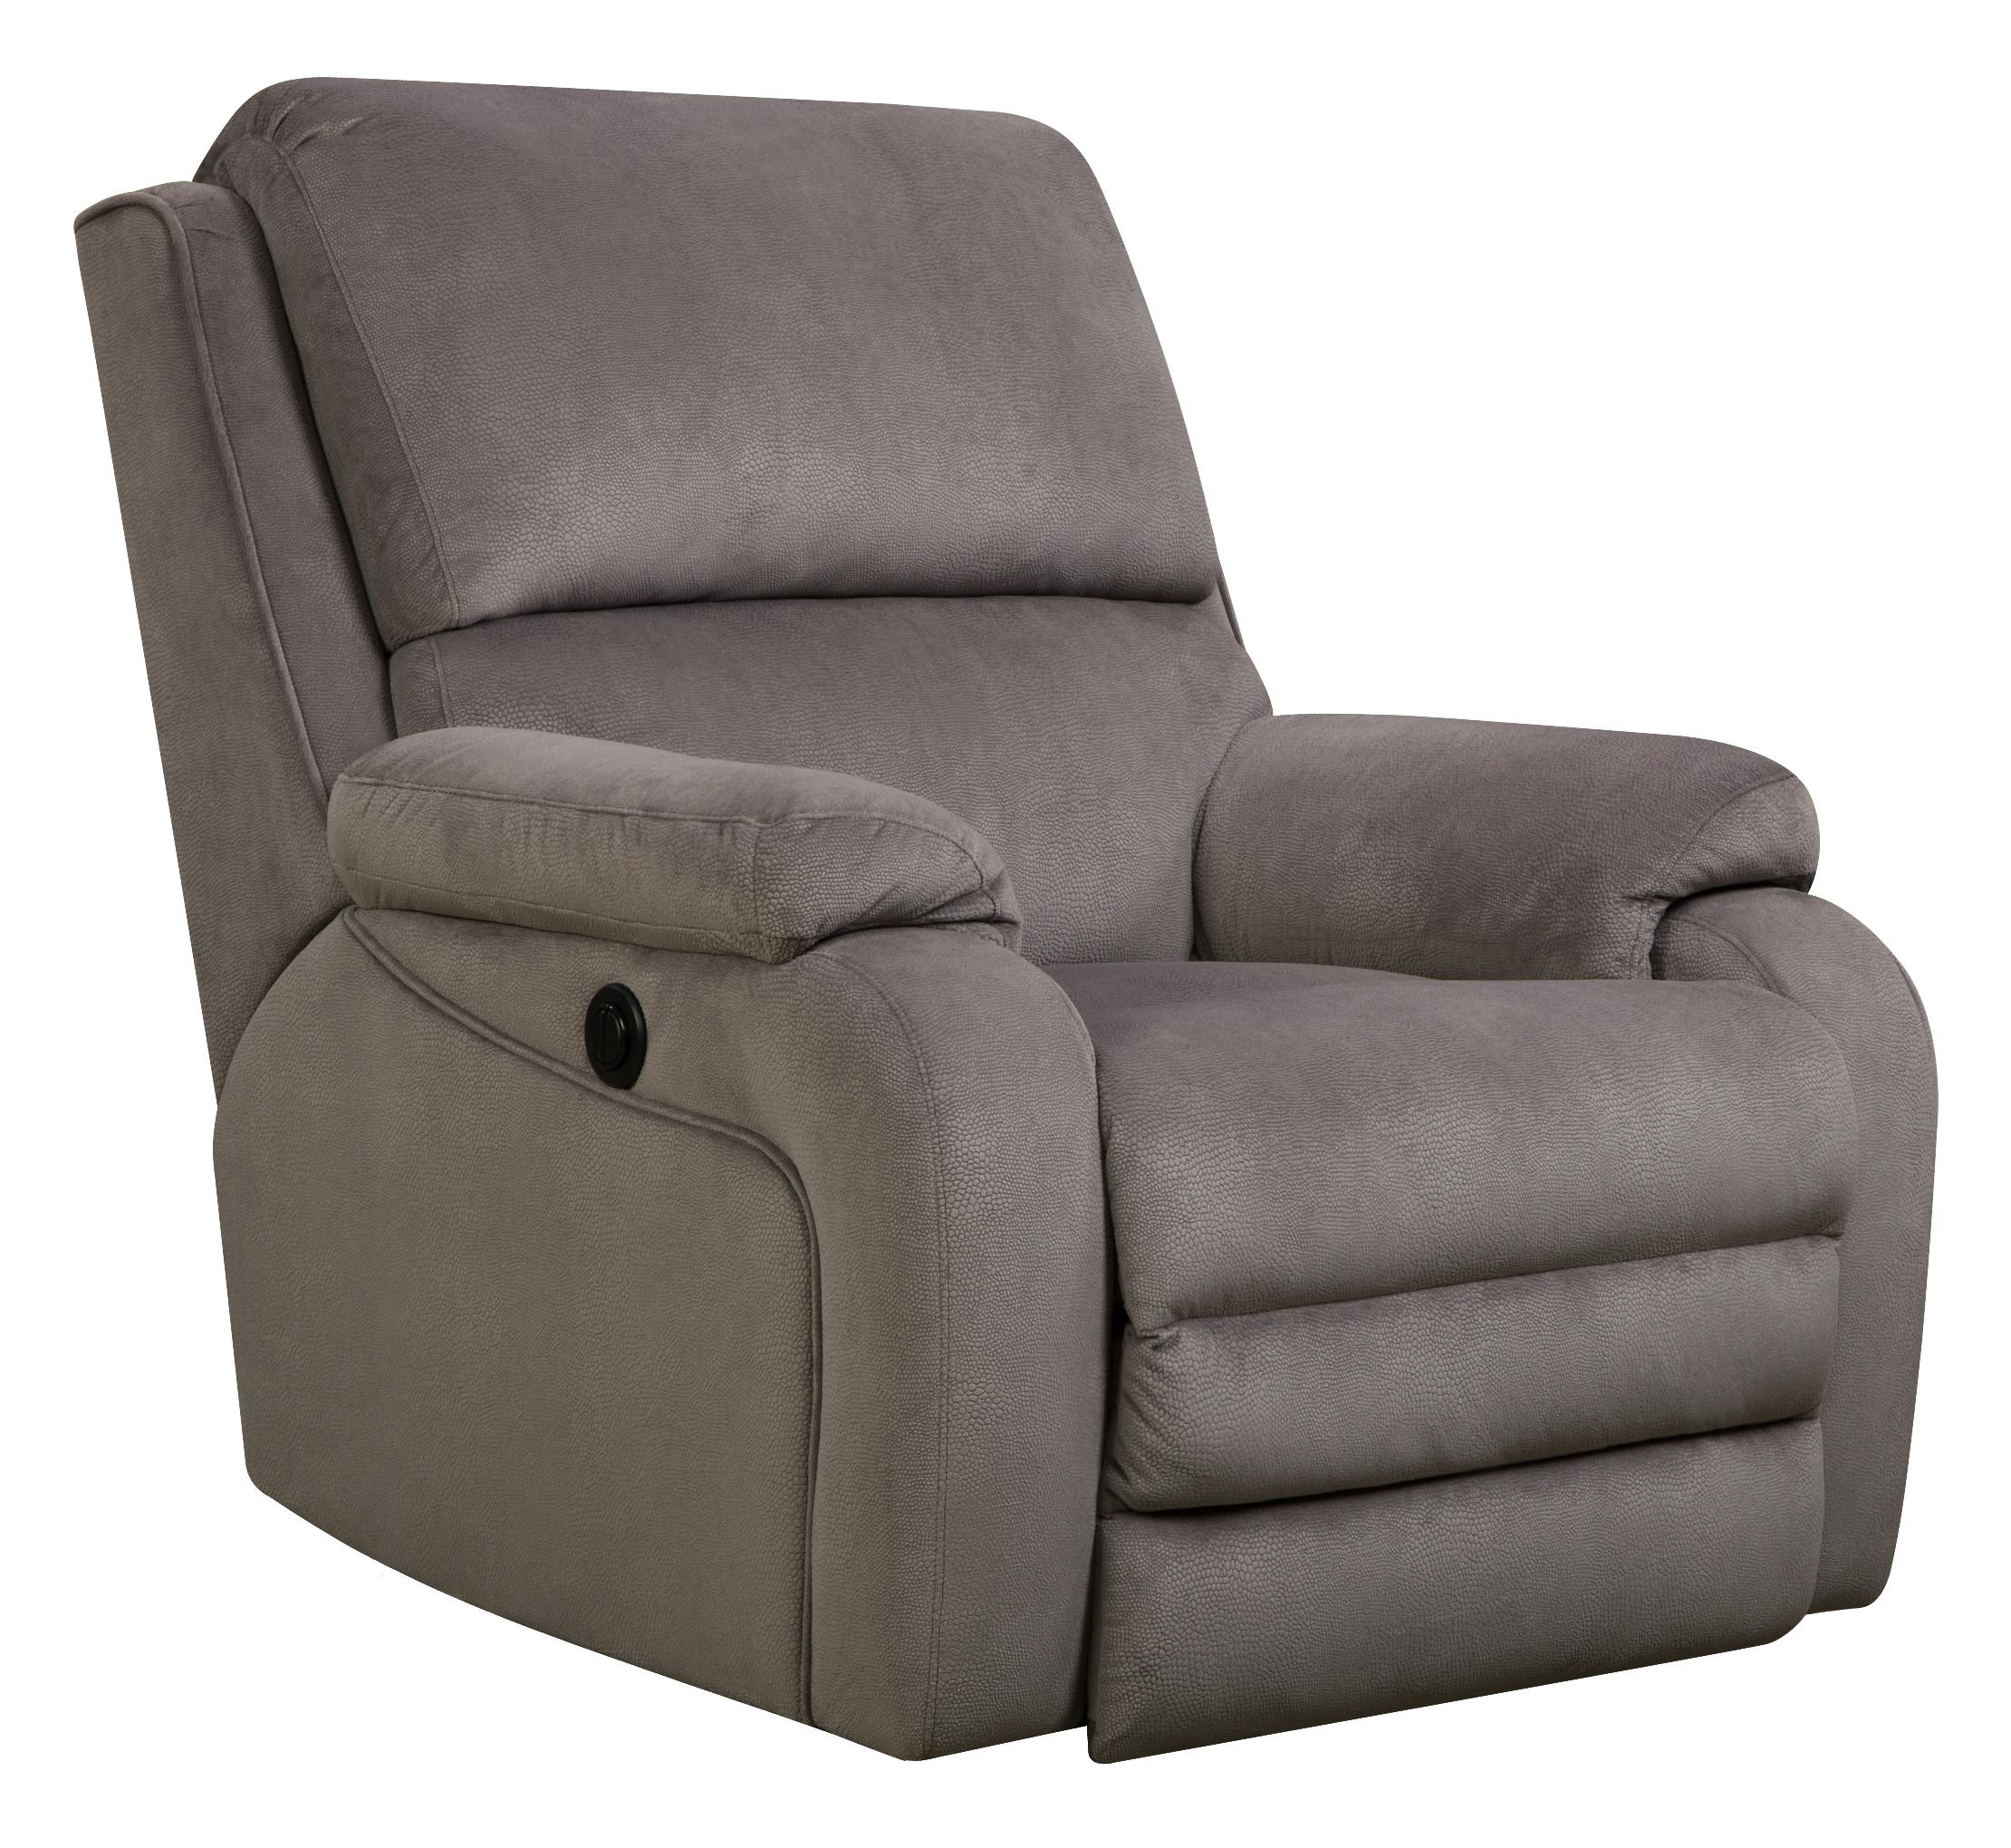 Belfort Motion Recliners Ovation Rocker Recliner - Item Number: 1174